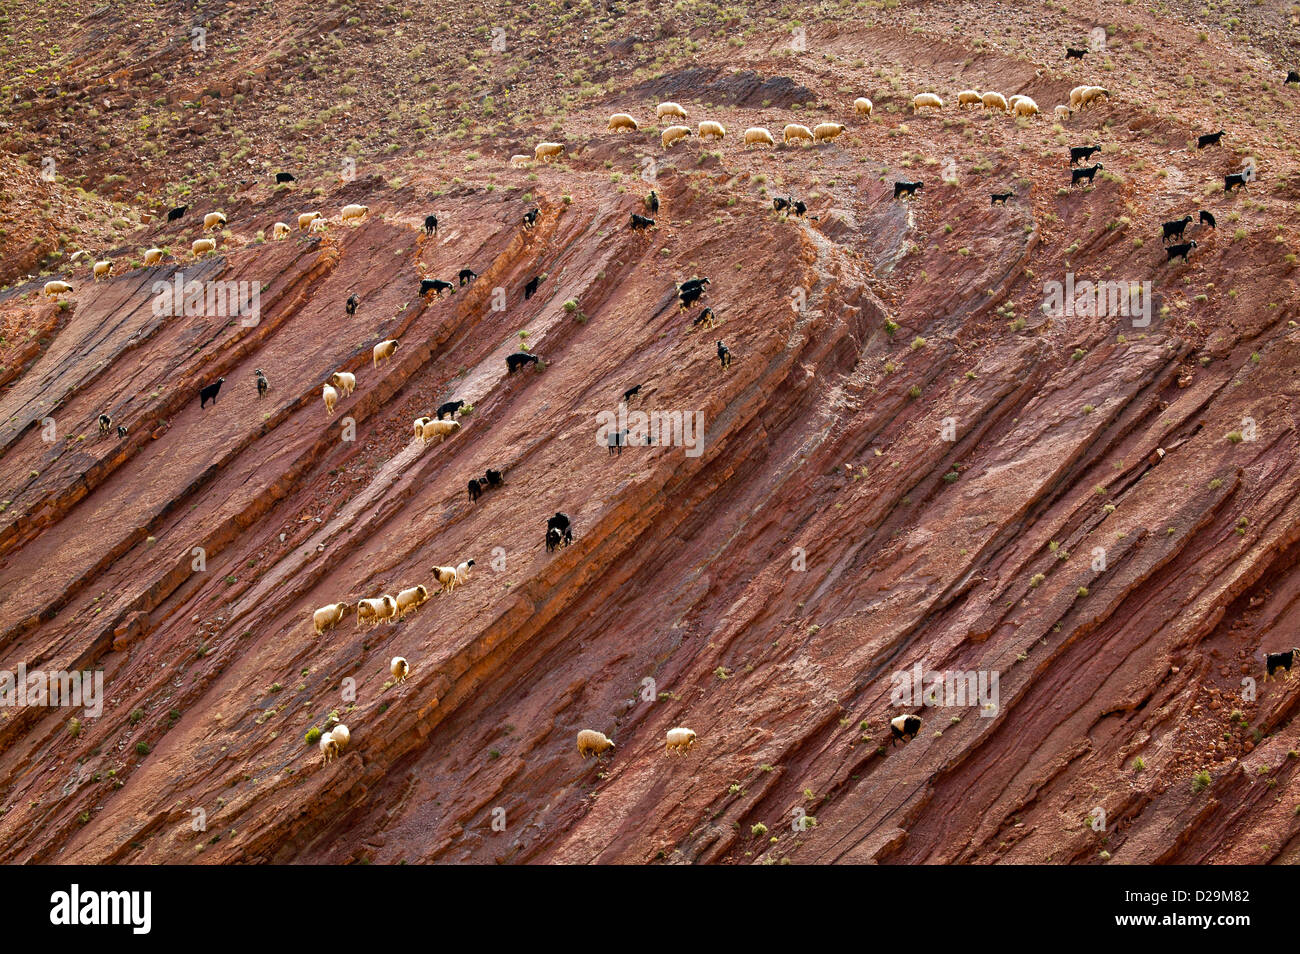 FLOCKS CROSSING AND GRAZING ON A ROCK FACE IN MOROCCO IN DESERT CONDITIONS - Stock Image